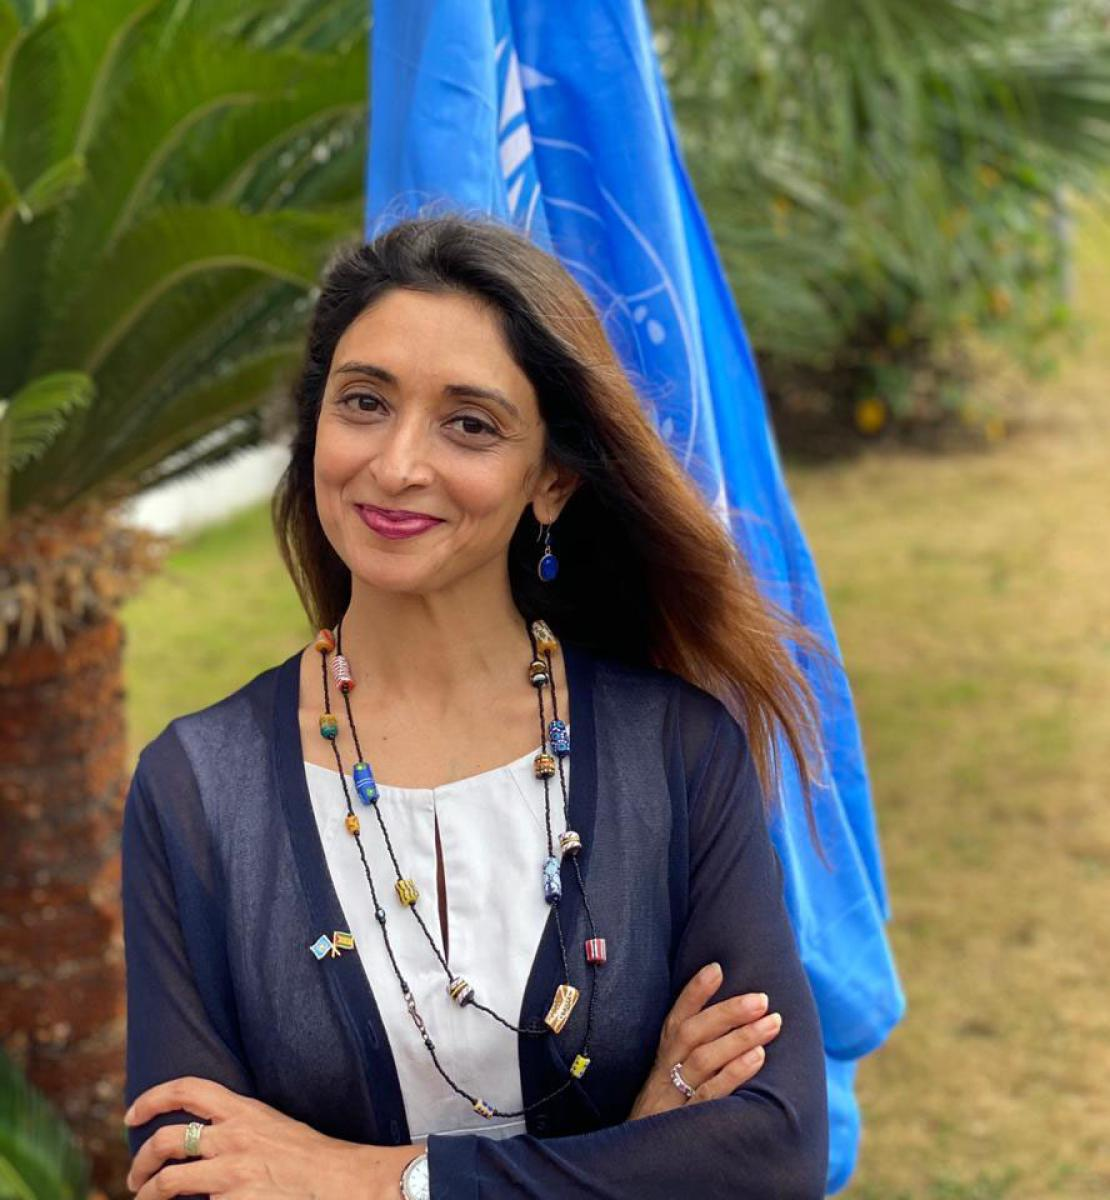 Official photo of the new appointed Resident Coordinator for Angola, Zahira Virani.